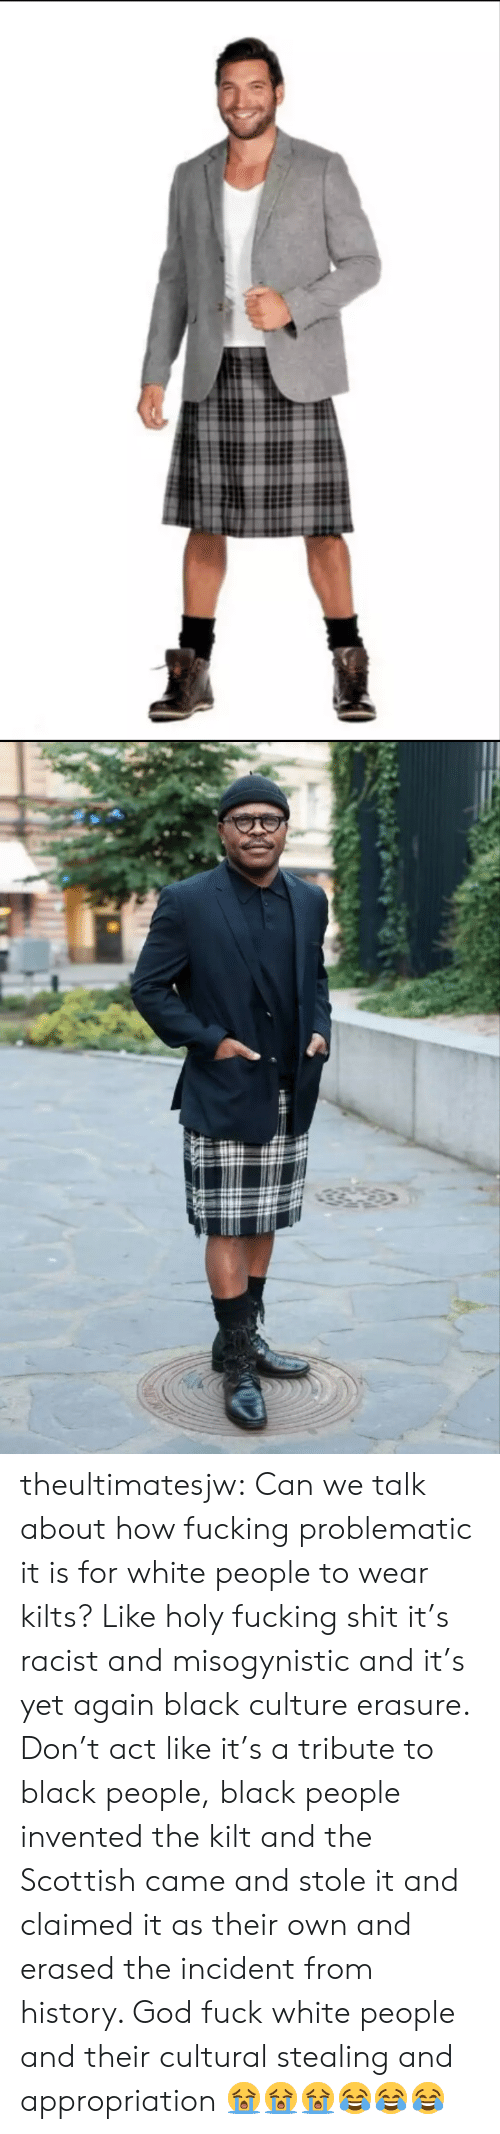 Black People Black: theultimatesjw:  Can we talk about how fucking problematic it is for white people to wear kilts? Like holy fucking shit it's racist and misogynistic and it's yet again black culture erasure. Don't act like it's a tribute to black people, black people invented the kilt and the Scottish came and stole it and claimed it as their own and erased the incident from history. God fuck white people and their cultural stealing and appropriation  😭😭😭😂😂😂